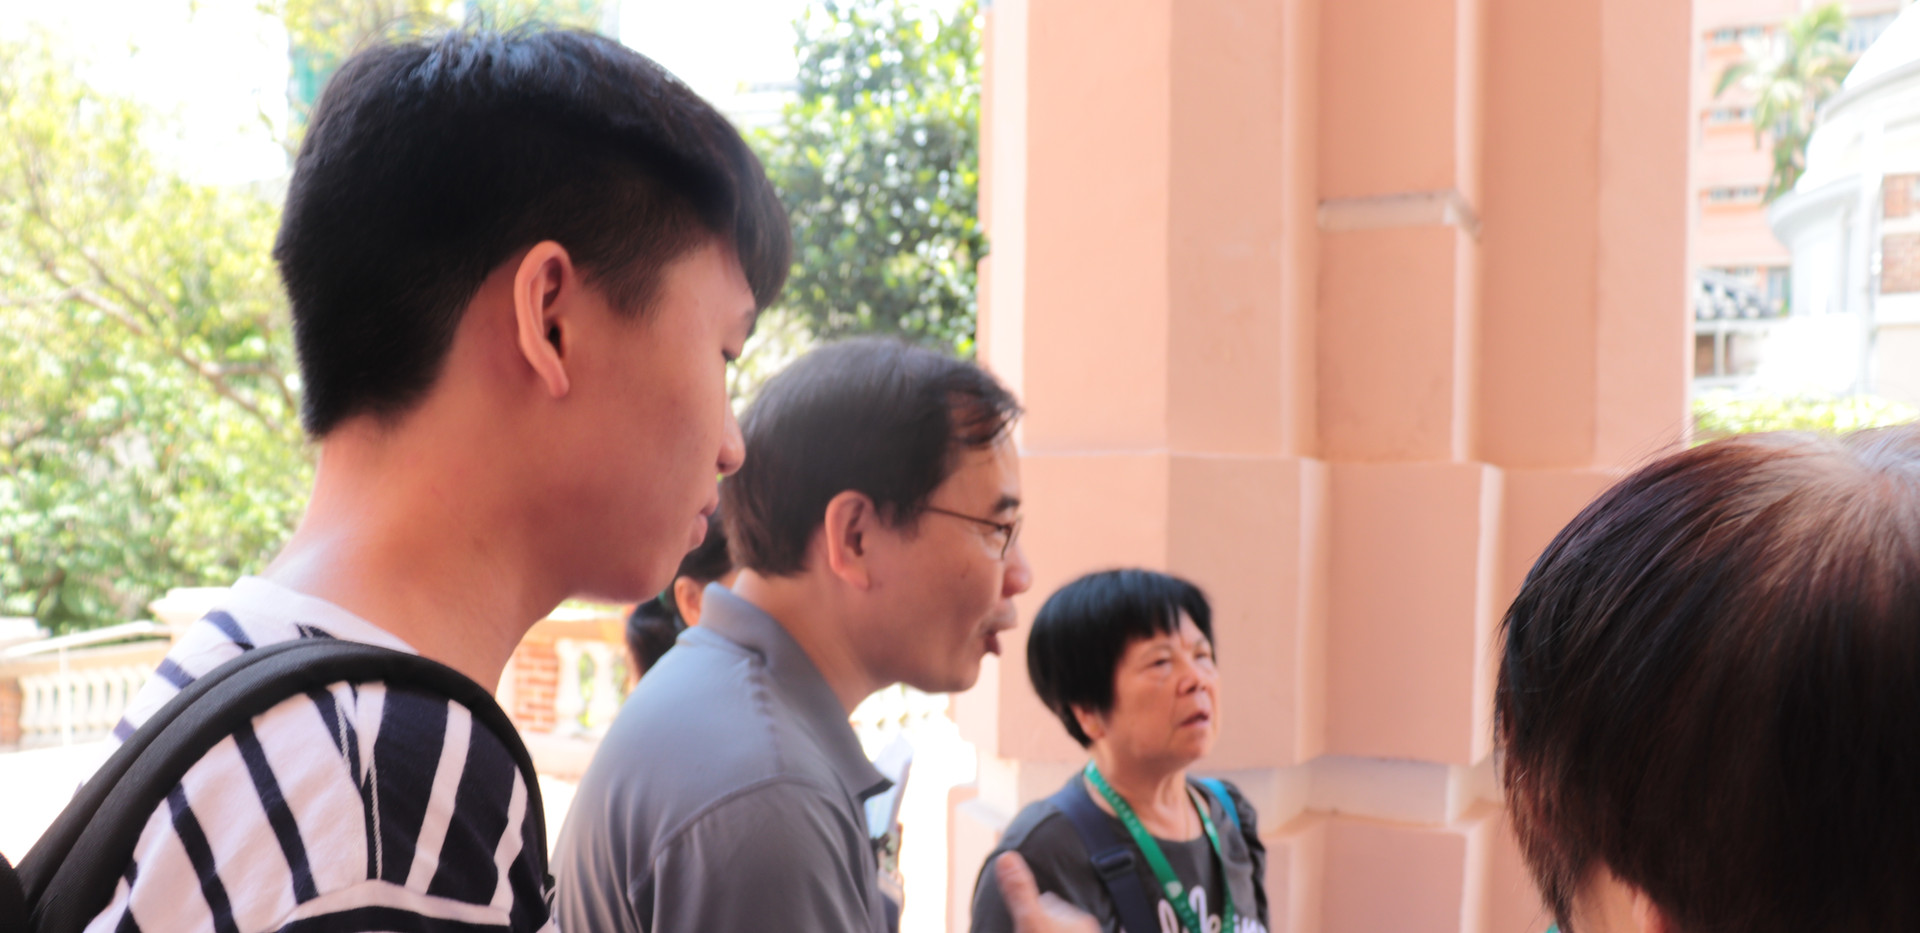 """[Legal talk and HKU tour] """"Outreach Legal Talks Initiative"""" (HKU OUTLET)'s second and finallegal talk formembers from St. James' Settlement and HKU guided tours with """"Senior Champions"""" before talk(June 29th, 2019)"""